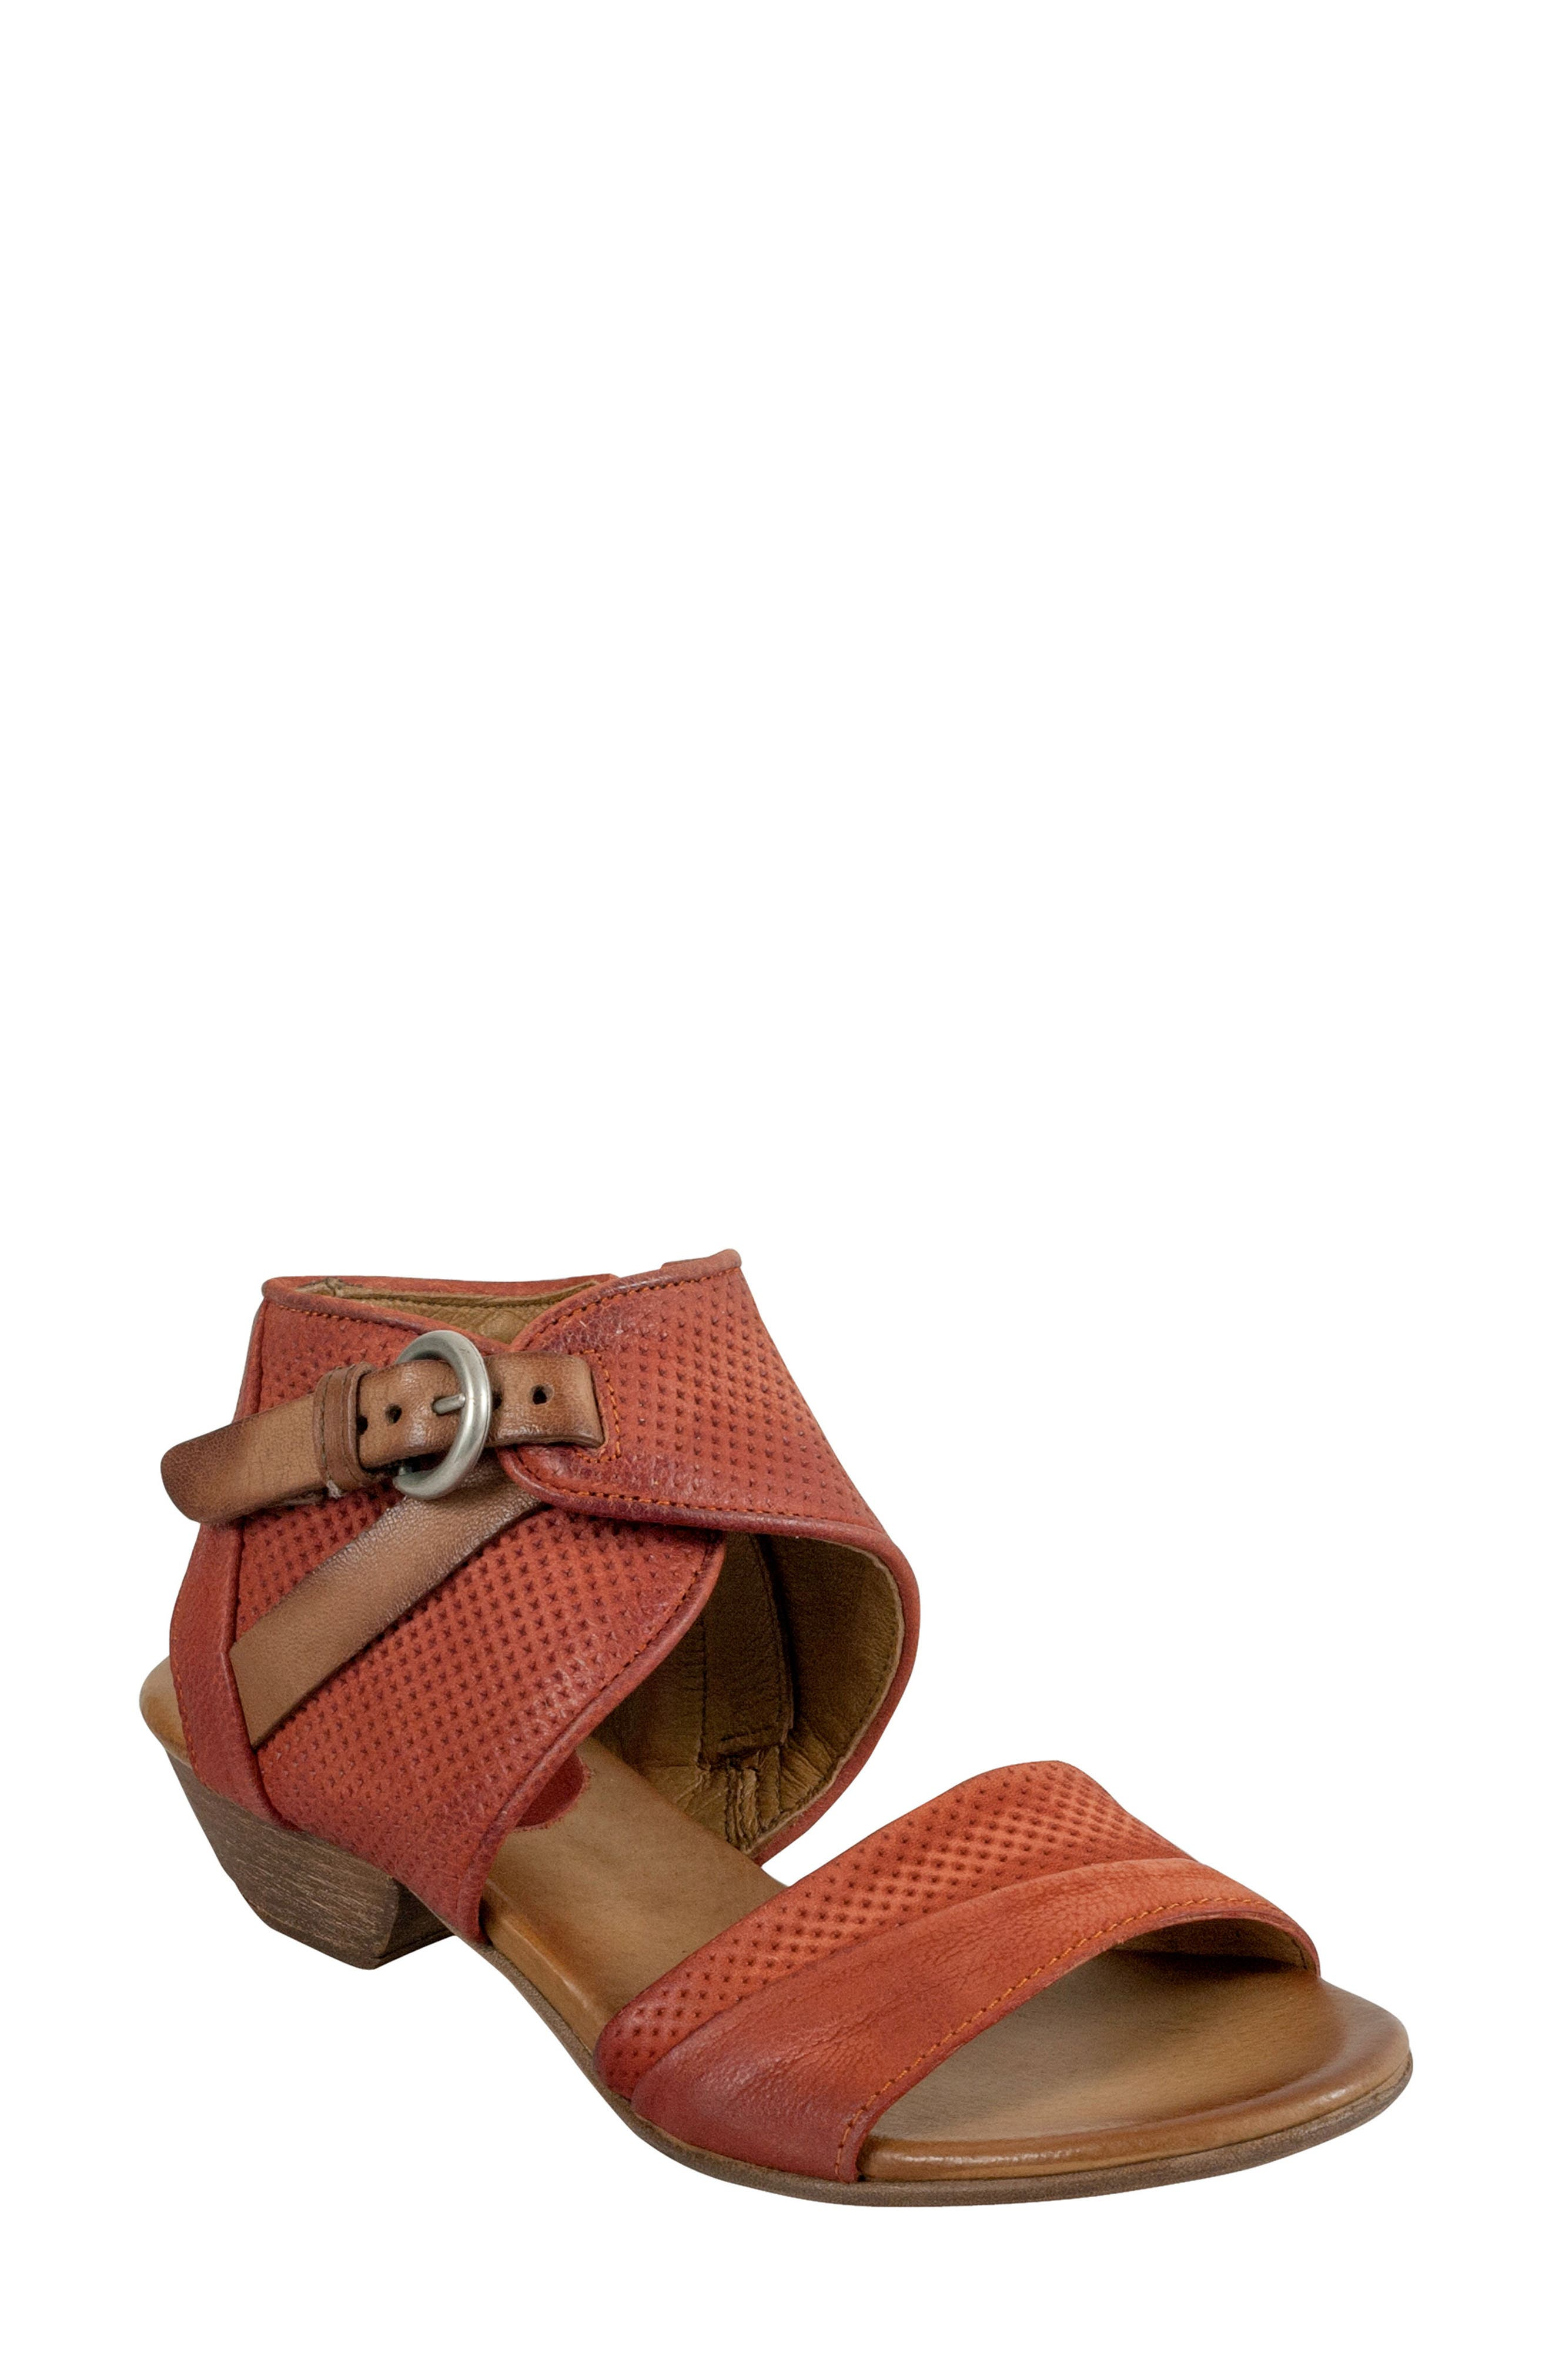 Chatham Textured Sandal,                         Main,                         color, Rust Leather